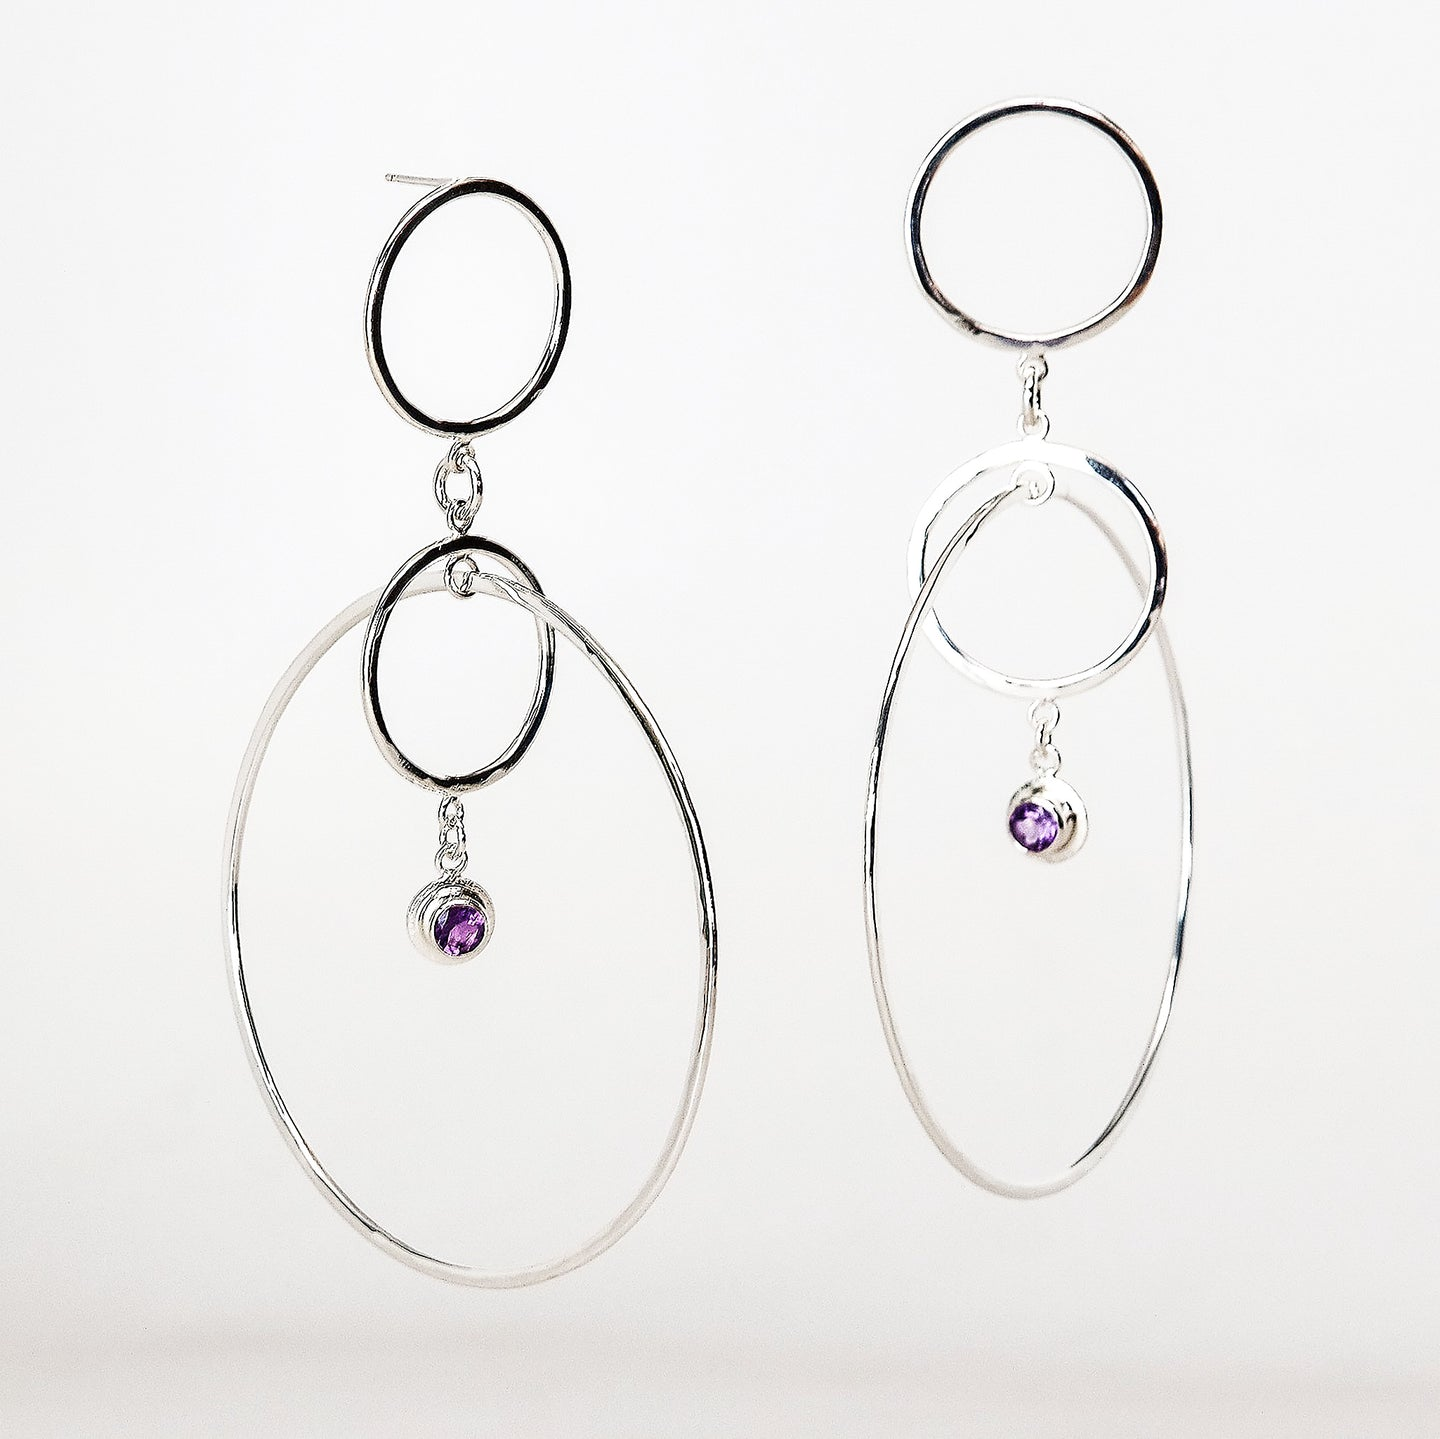 Orbs Earrings - Sterling Silver, Amethyst Faceted Gemstones - TIN HAUS Jewelry